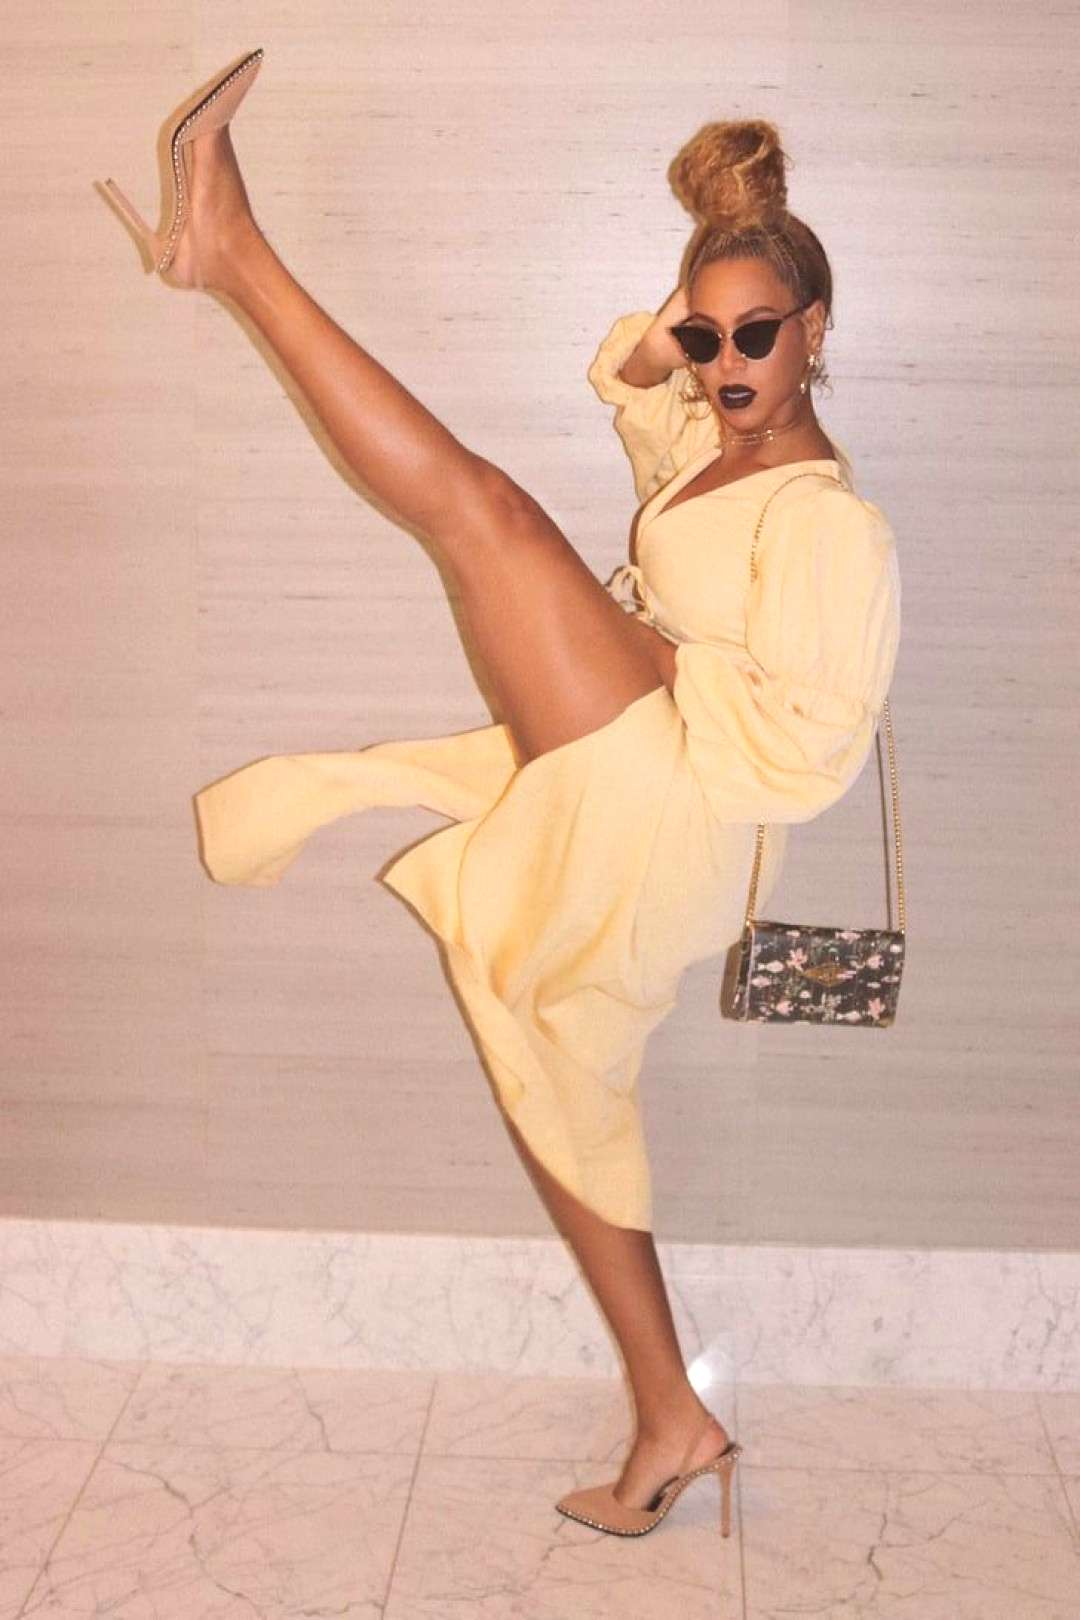 Celebrity amp Entertainment   Beyoncé Shares Over 100 Never-Before-Seen Photos For Her 37th Birthday